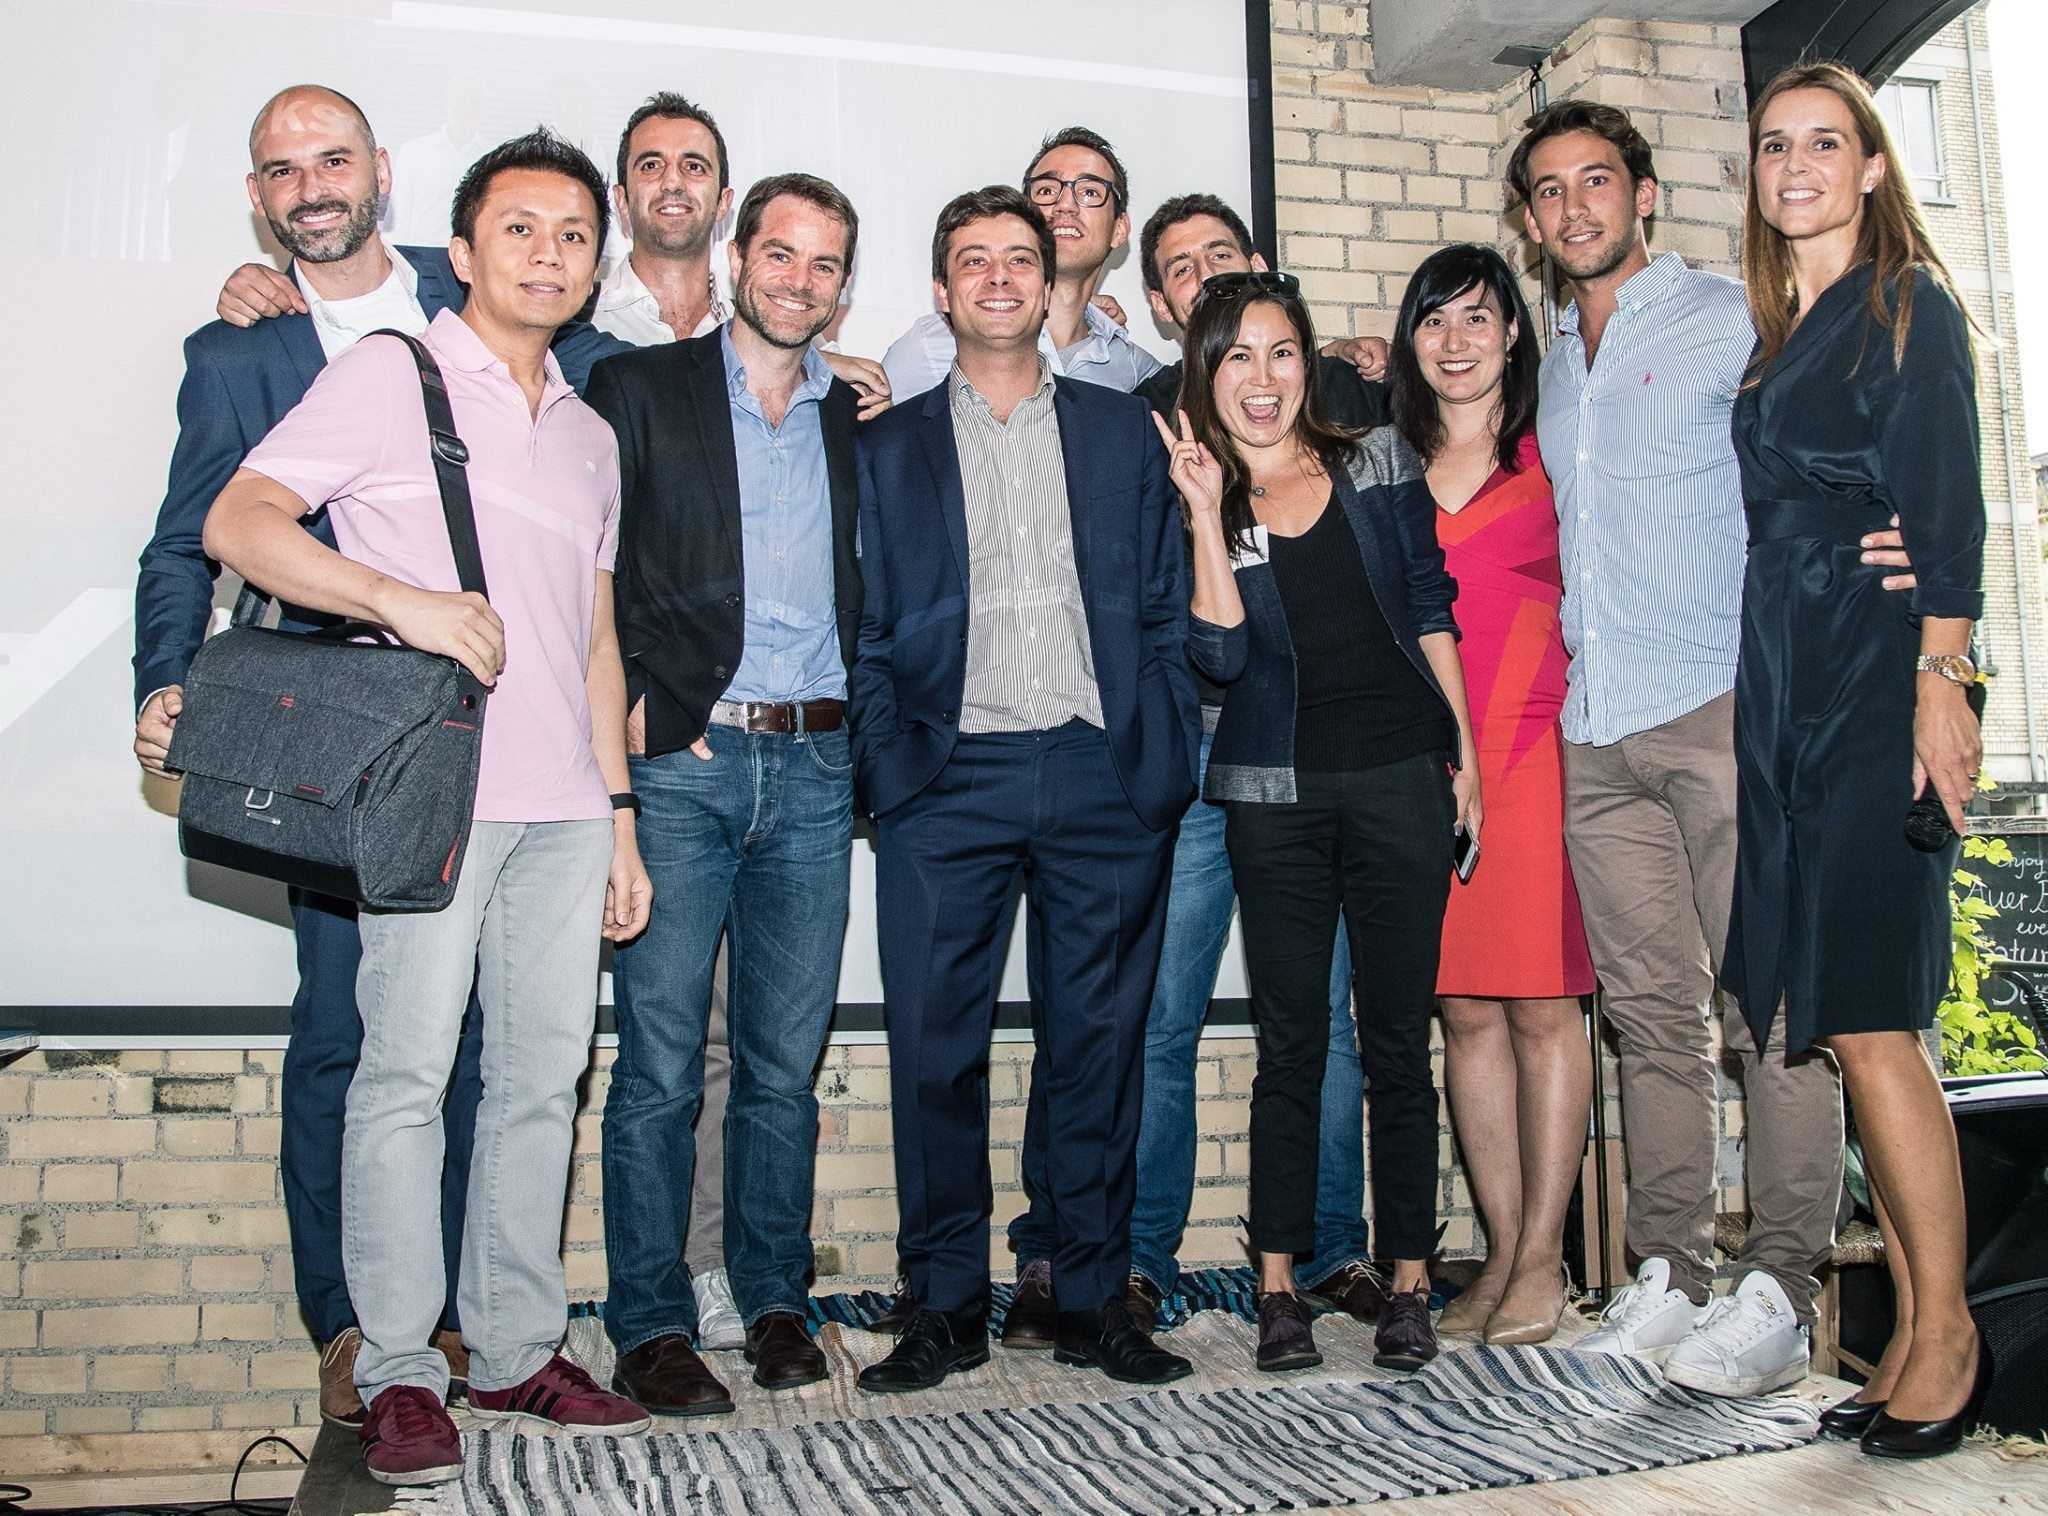 8 Smart-City Start-ups and 1 Intrapreneur team will join the Kickstart Accelerator in September